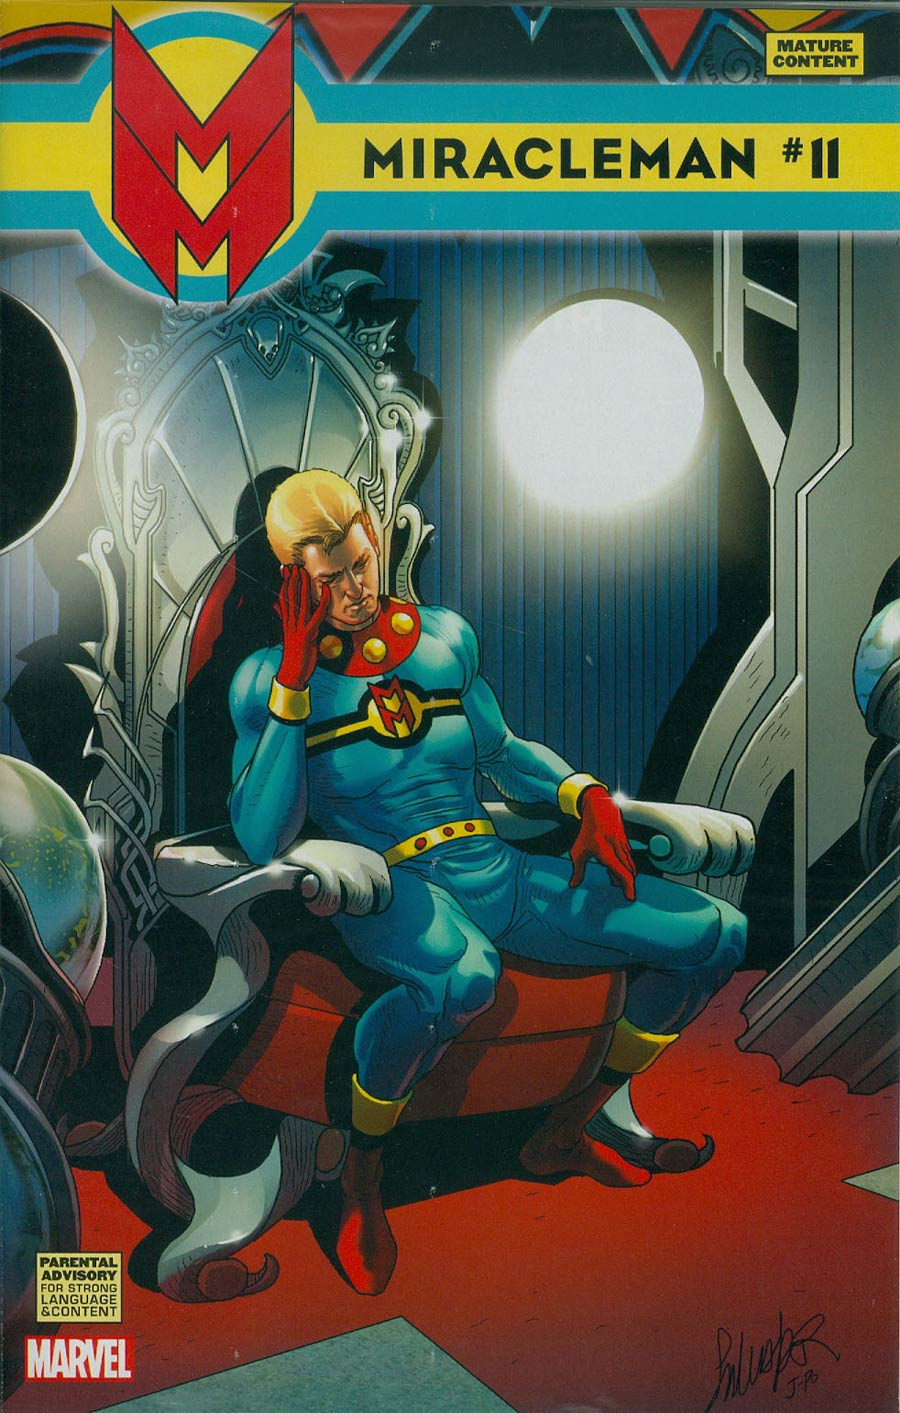 Miracleman (Marvel) #11 Cover C Incentive Salvador Larroca Variant Cover With Polybag